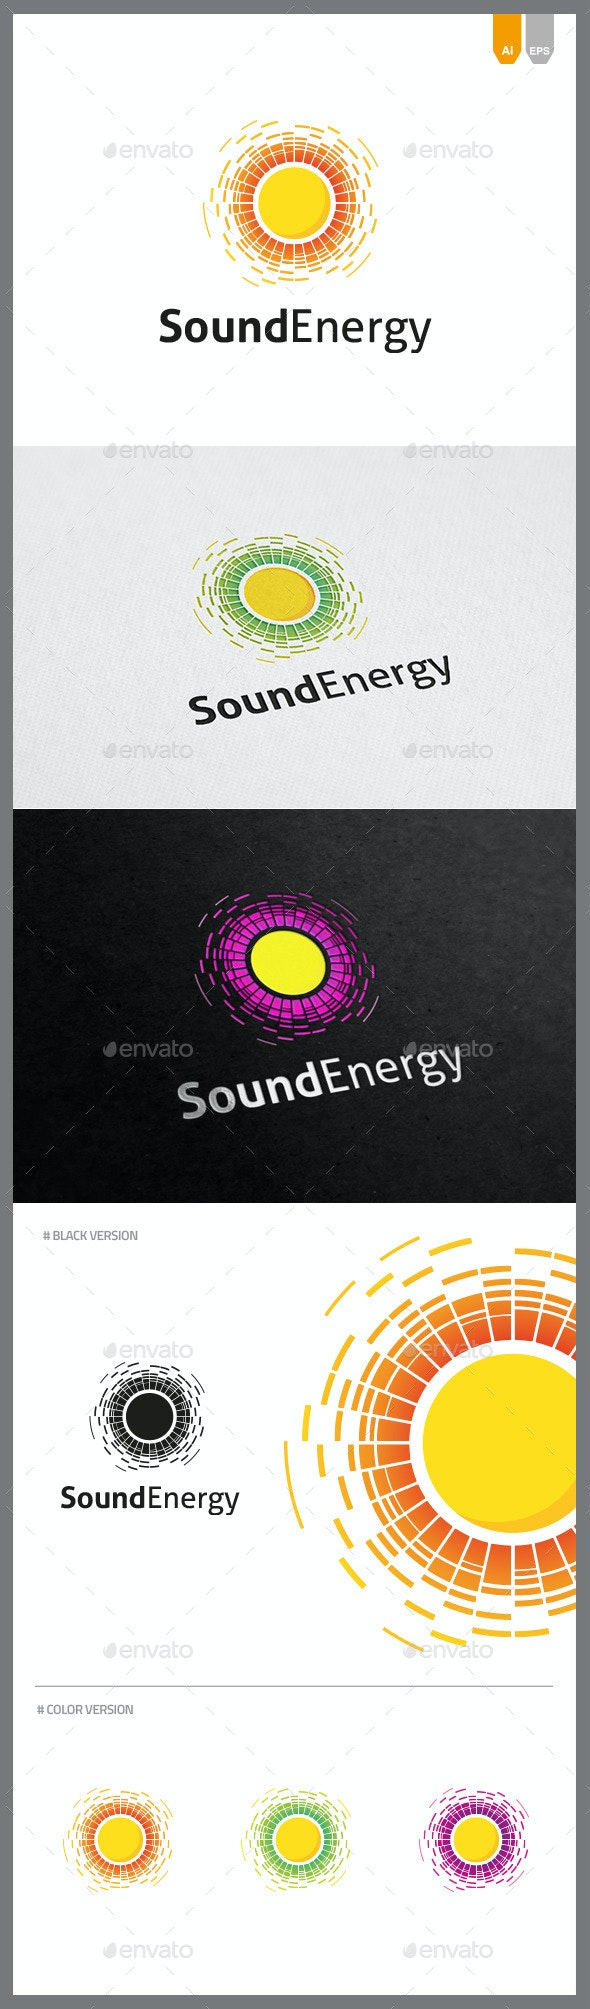 Sound Energy Logo - Objects Logo Templates